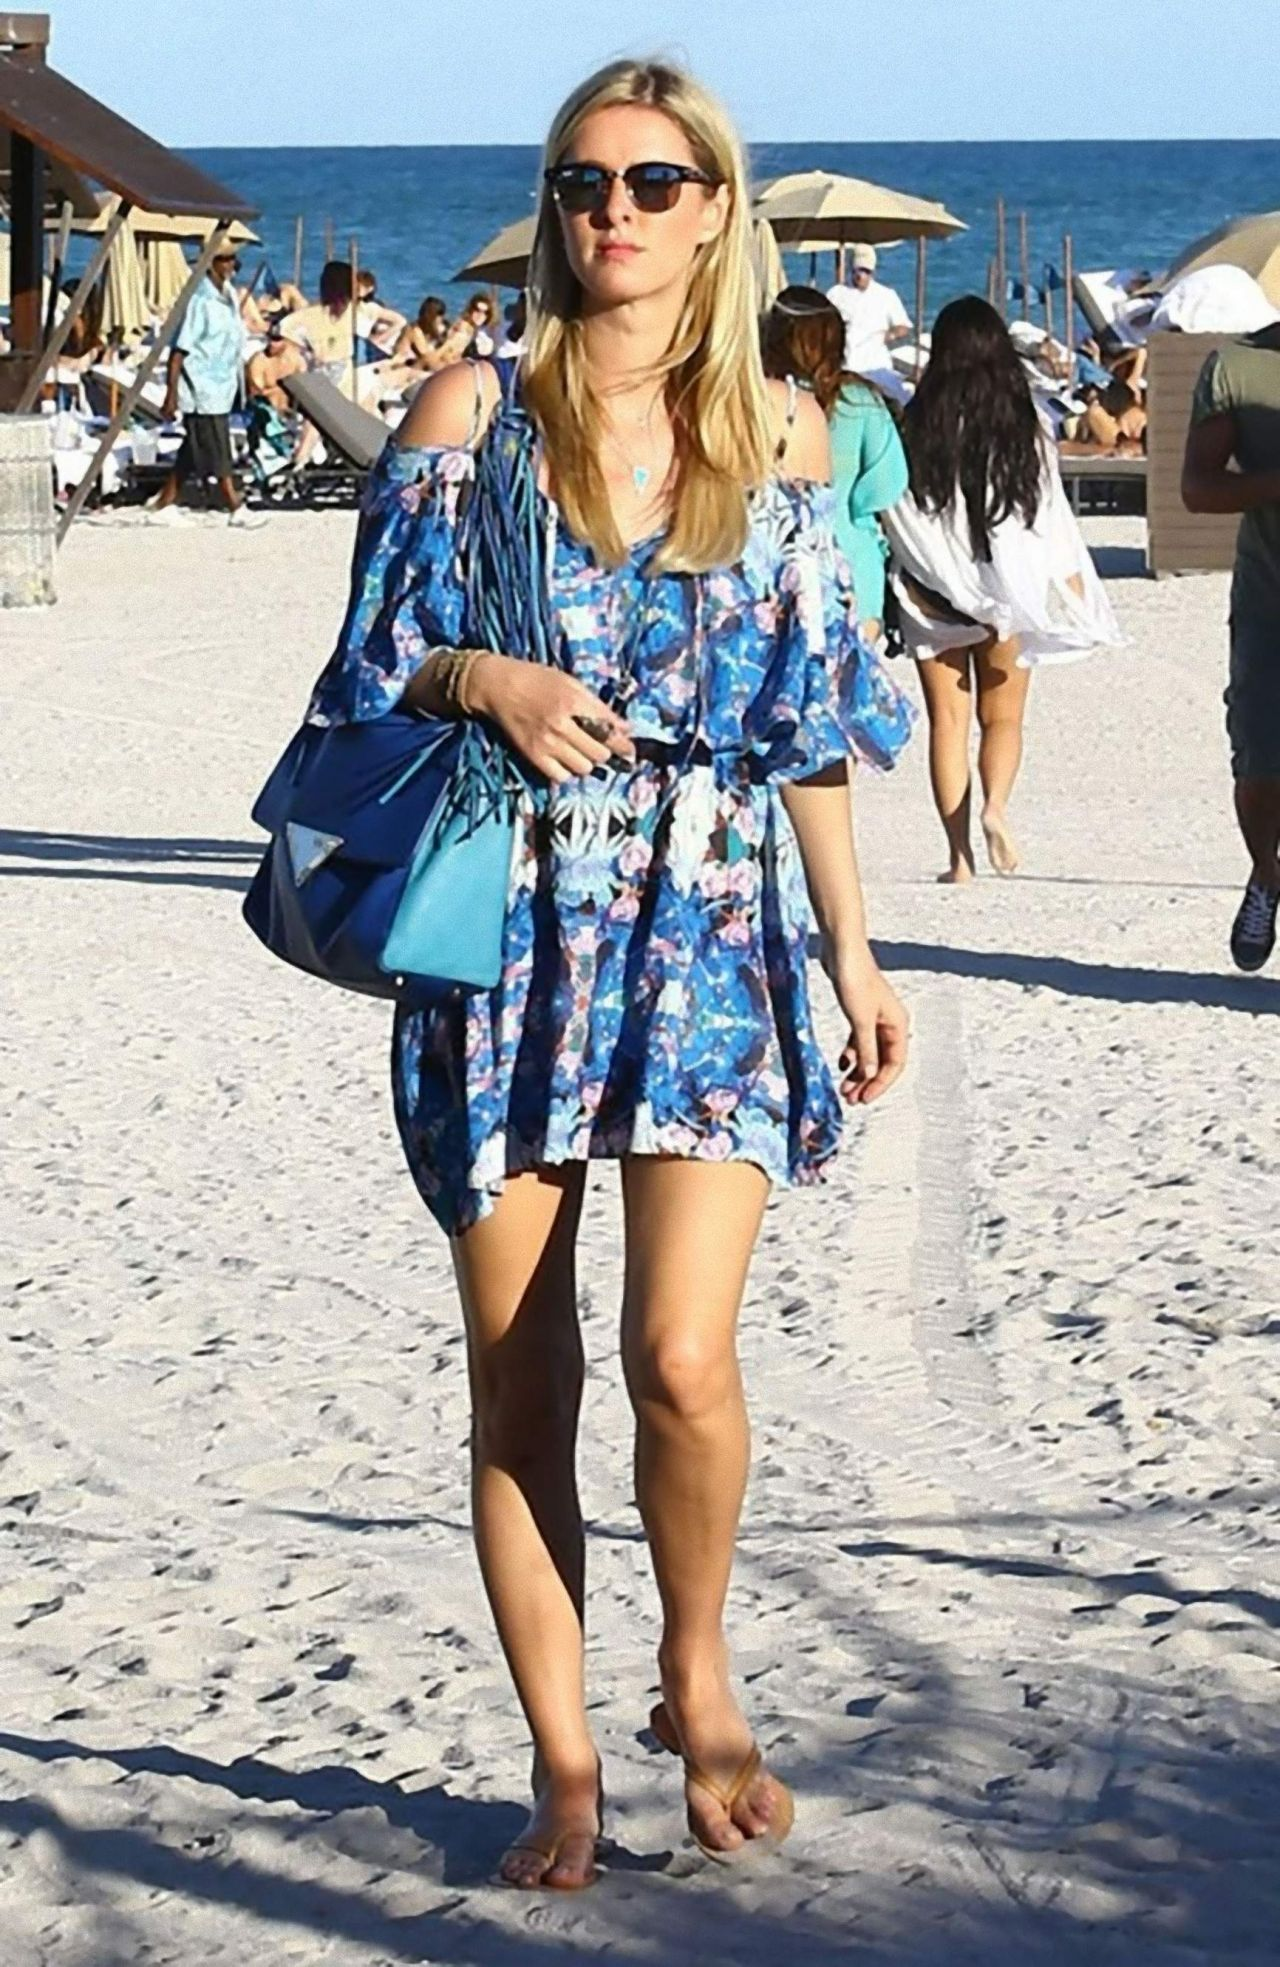 Nicky Hilton in Summer Dress